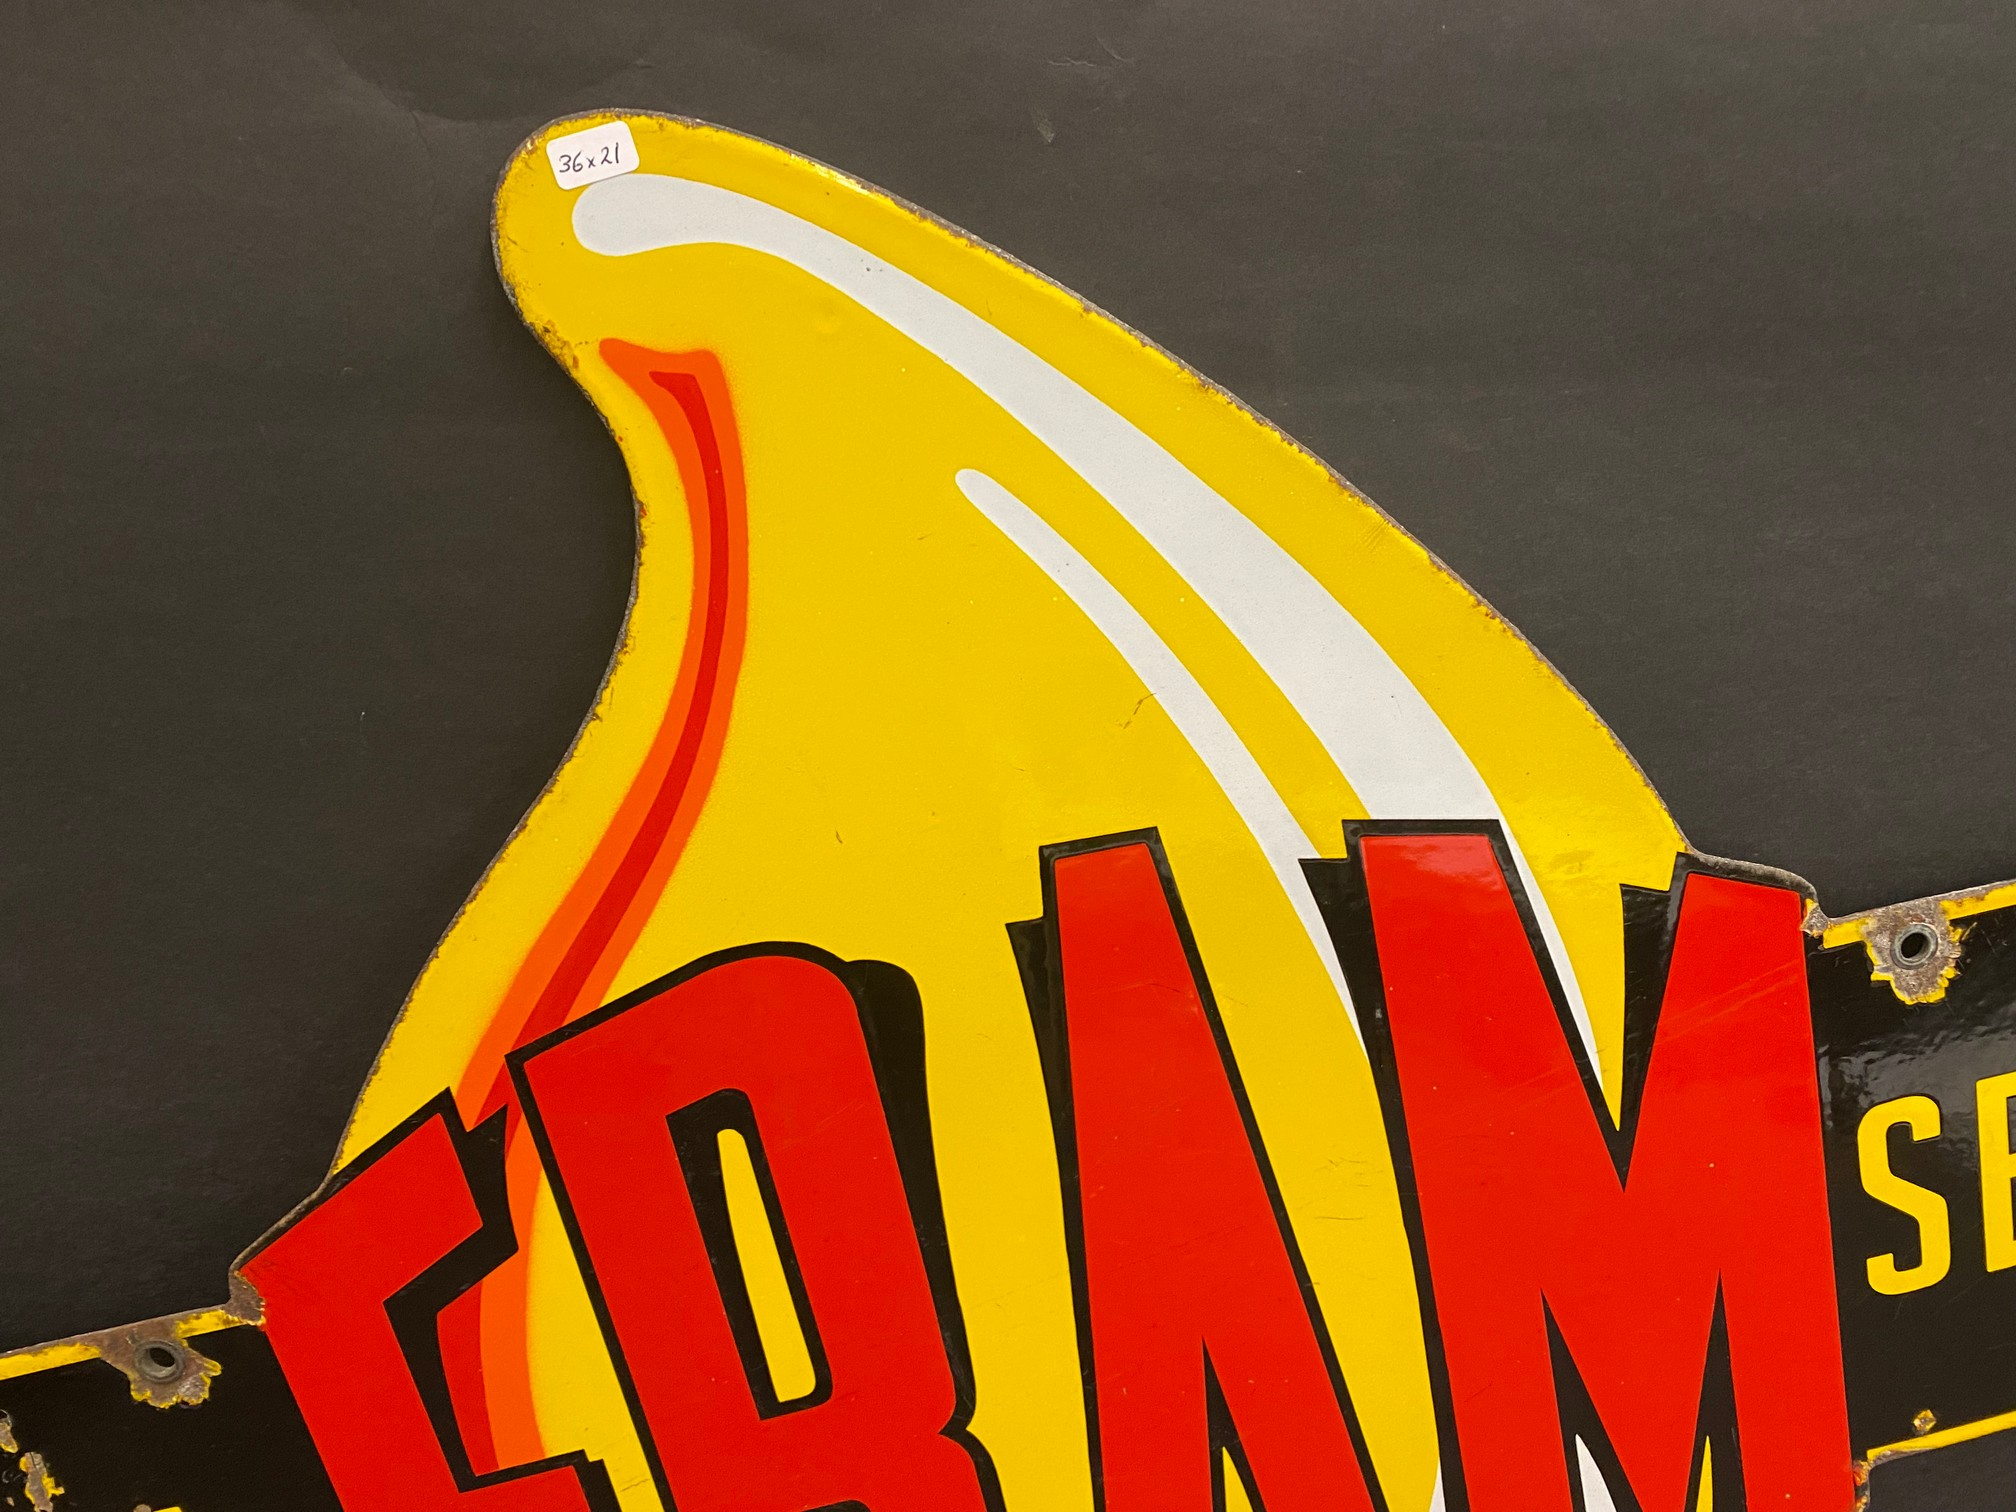 """A very rare Fram 'Official Service' die-cut double sided enamel sign in superb condition, 36 x 21"""". - Image 8 of 9"""